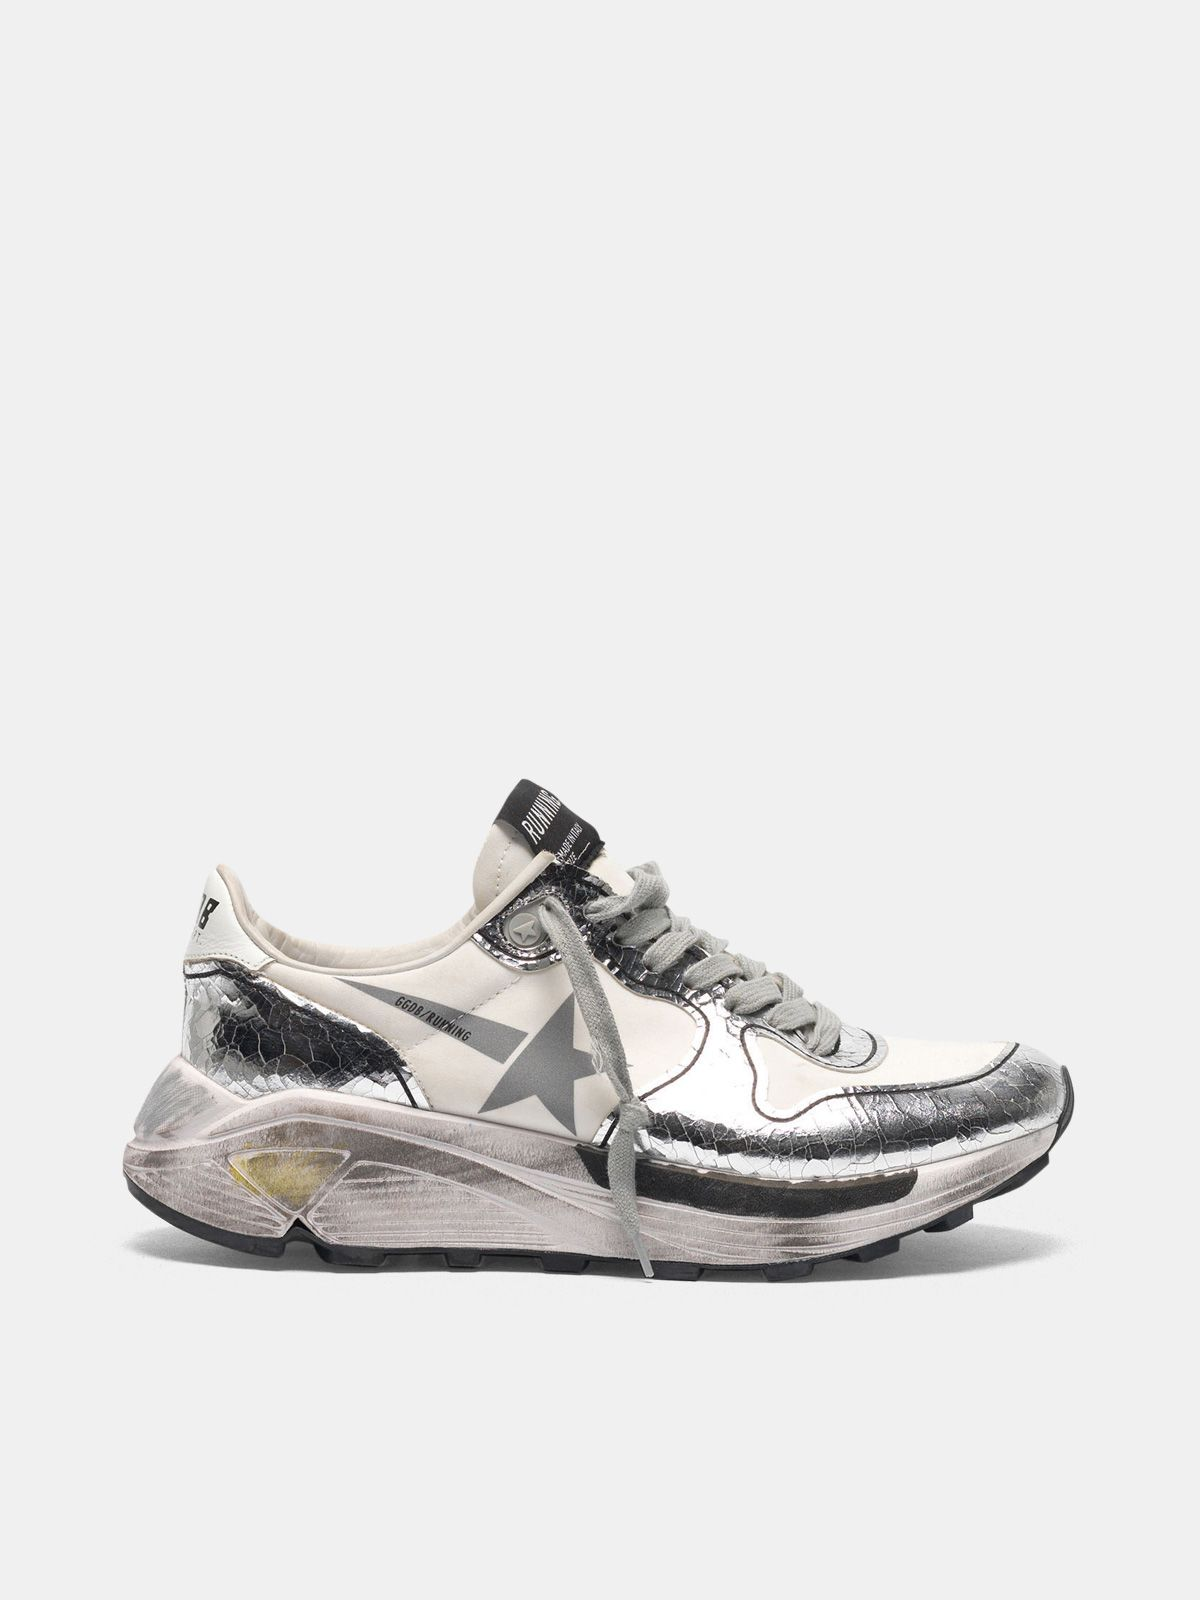 Golden Goose - Silver and white Running Sole sneakers in